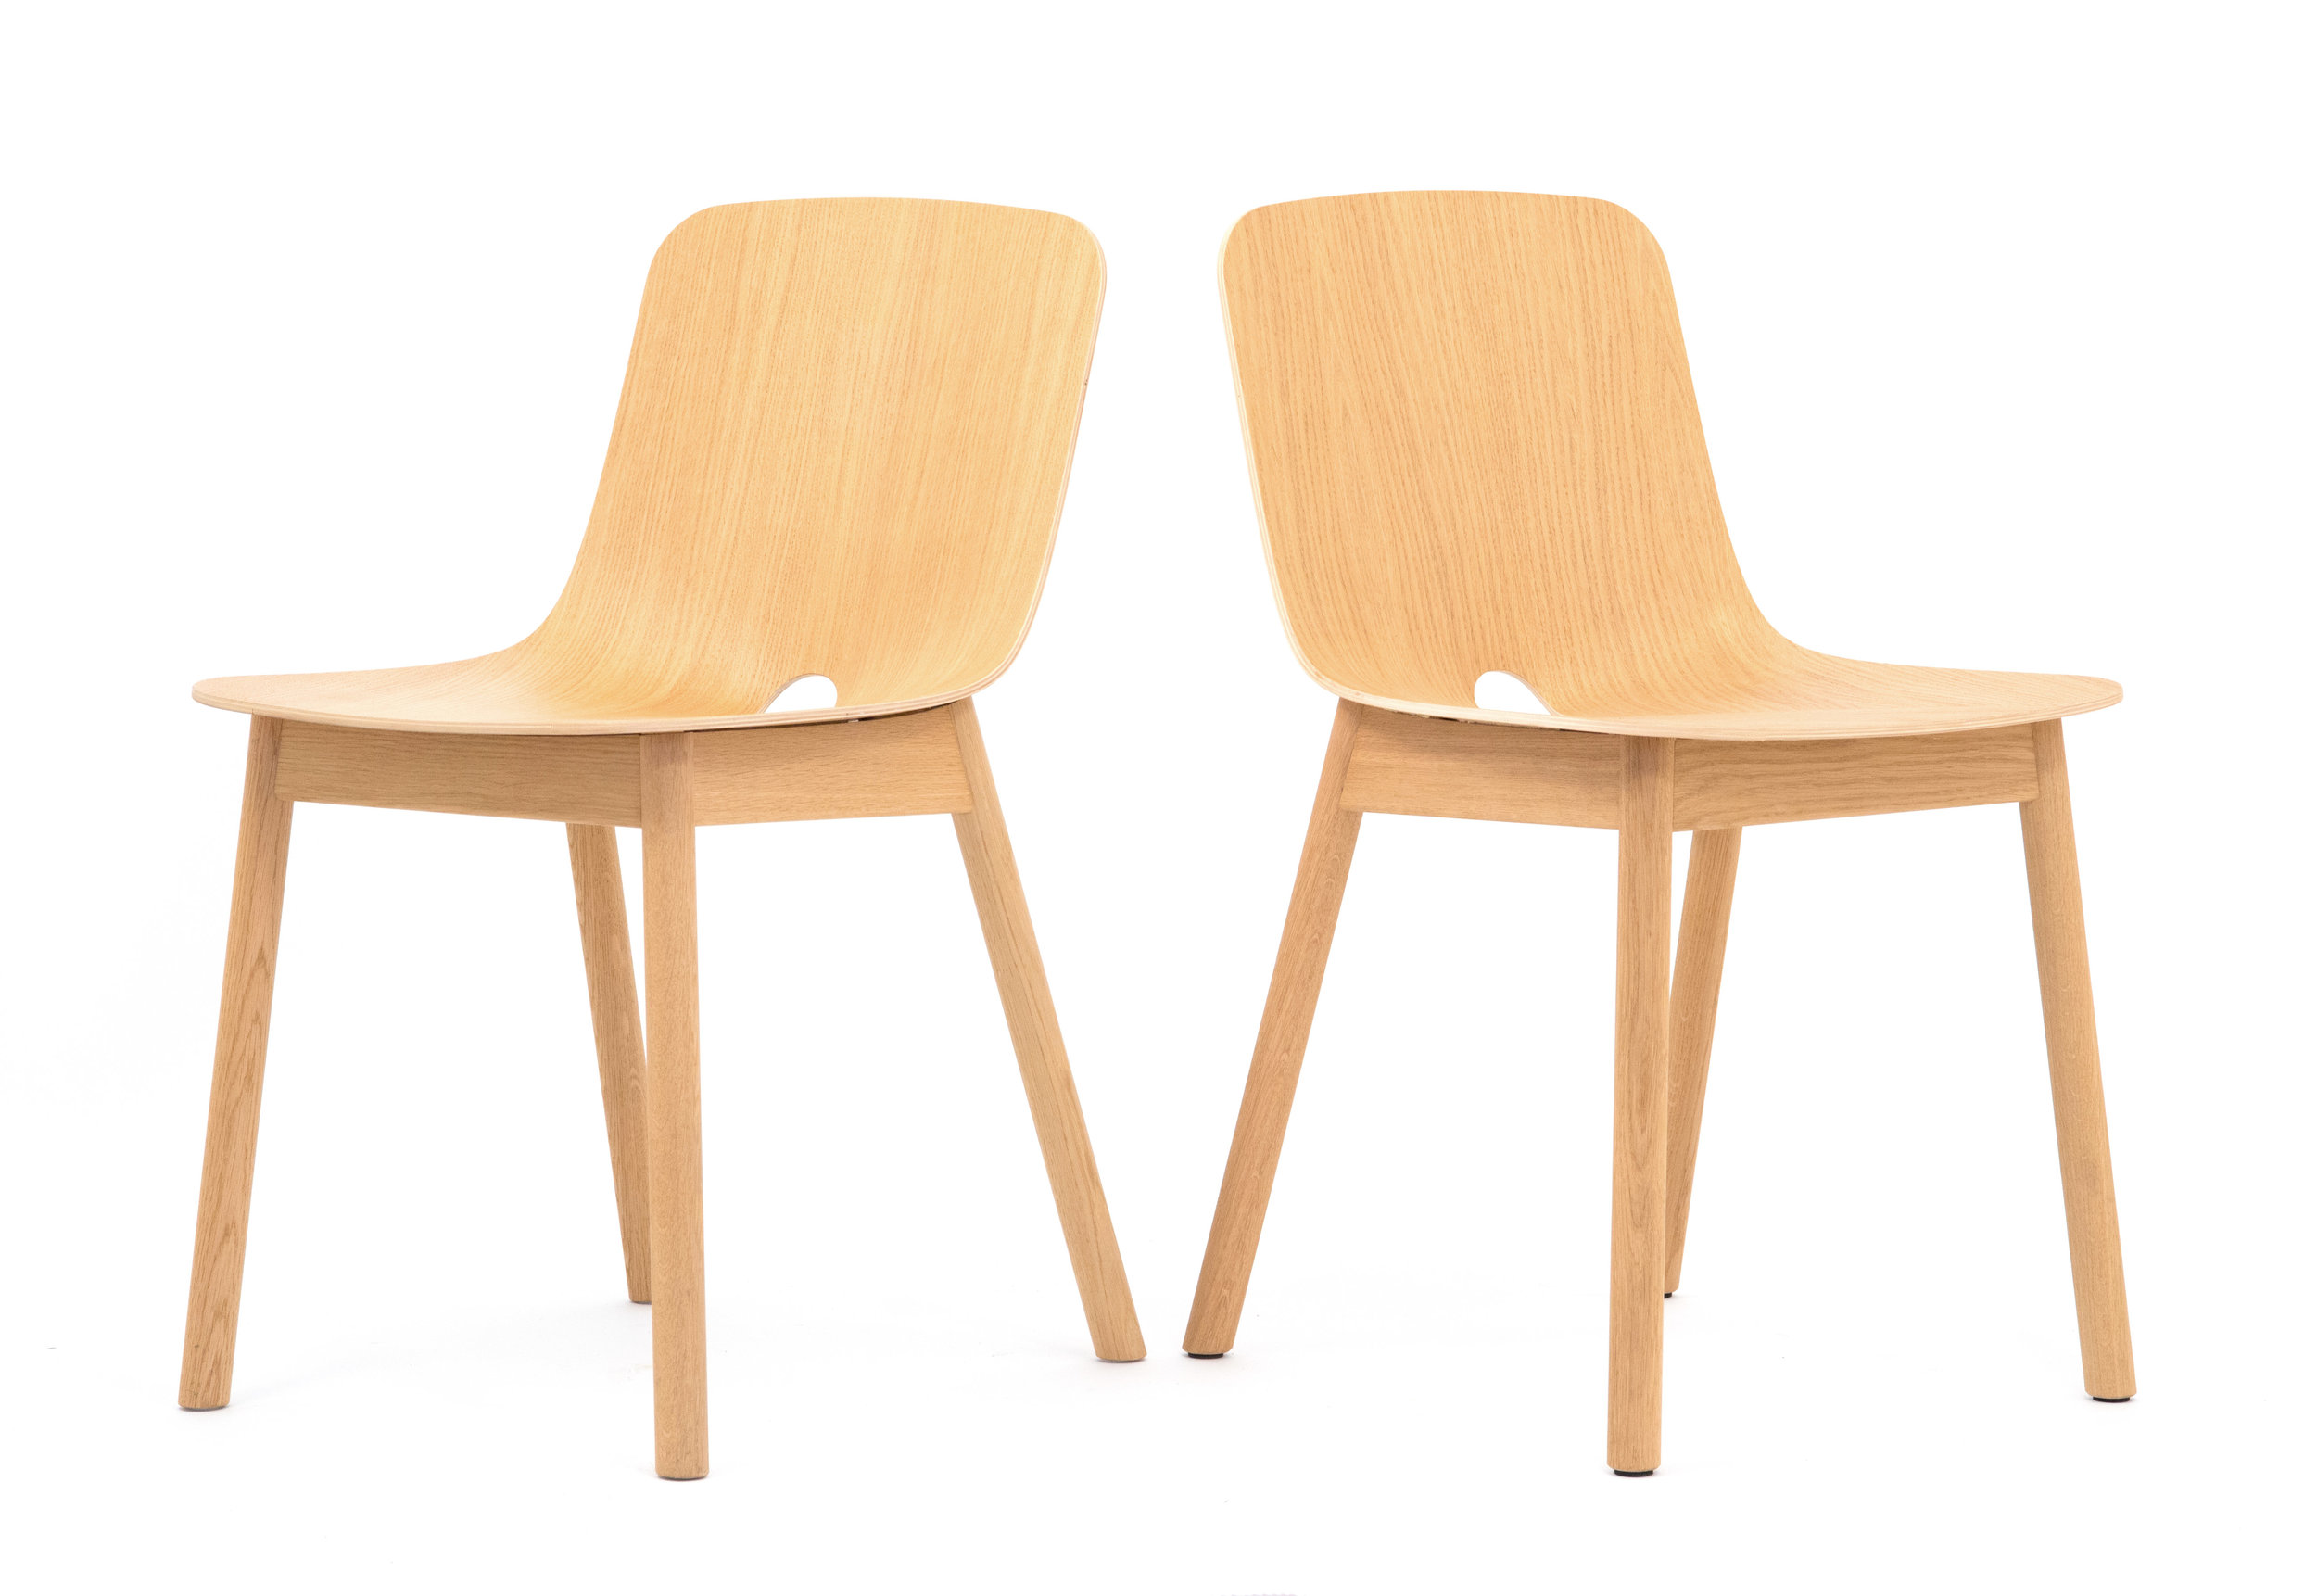 Finish chairs 2 copy.jpg